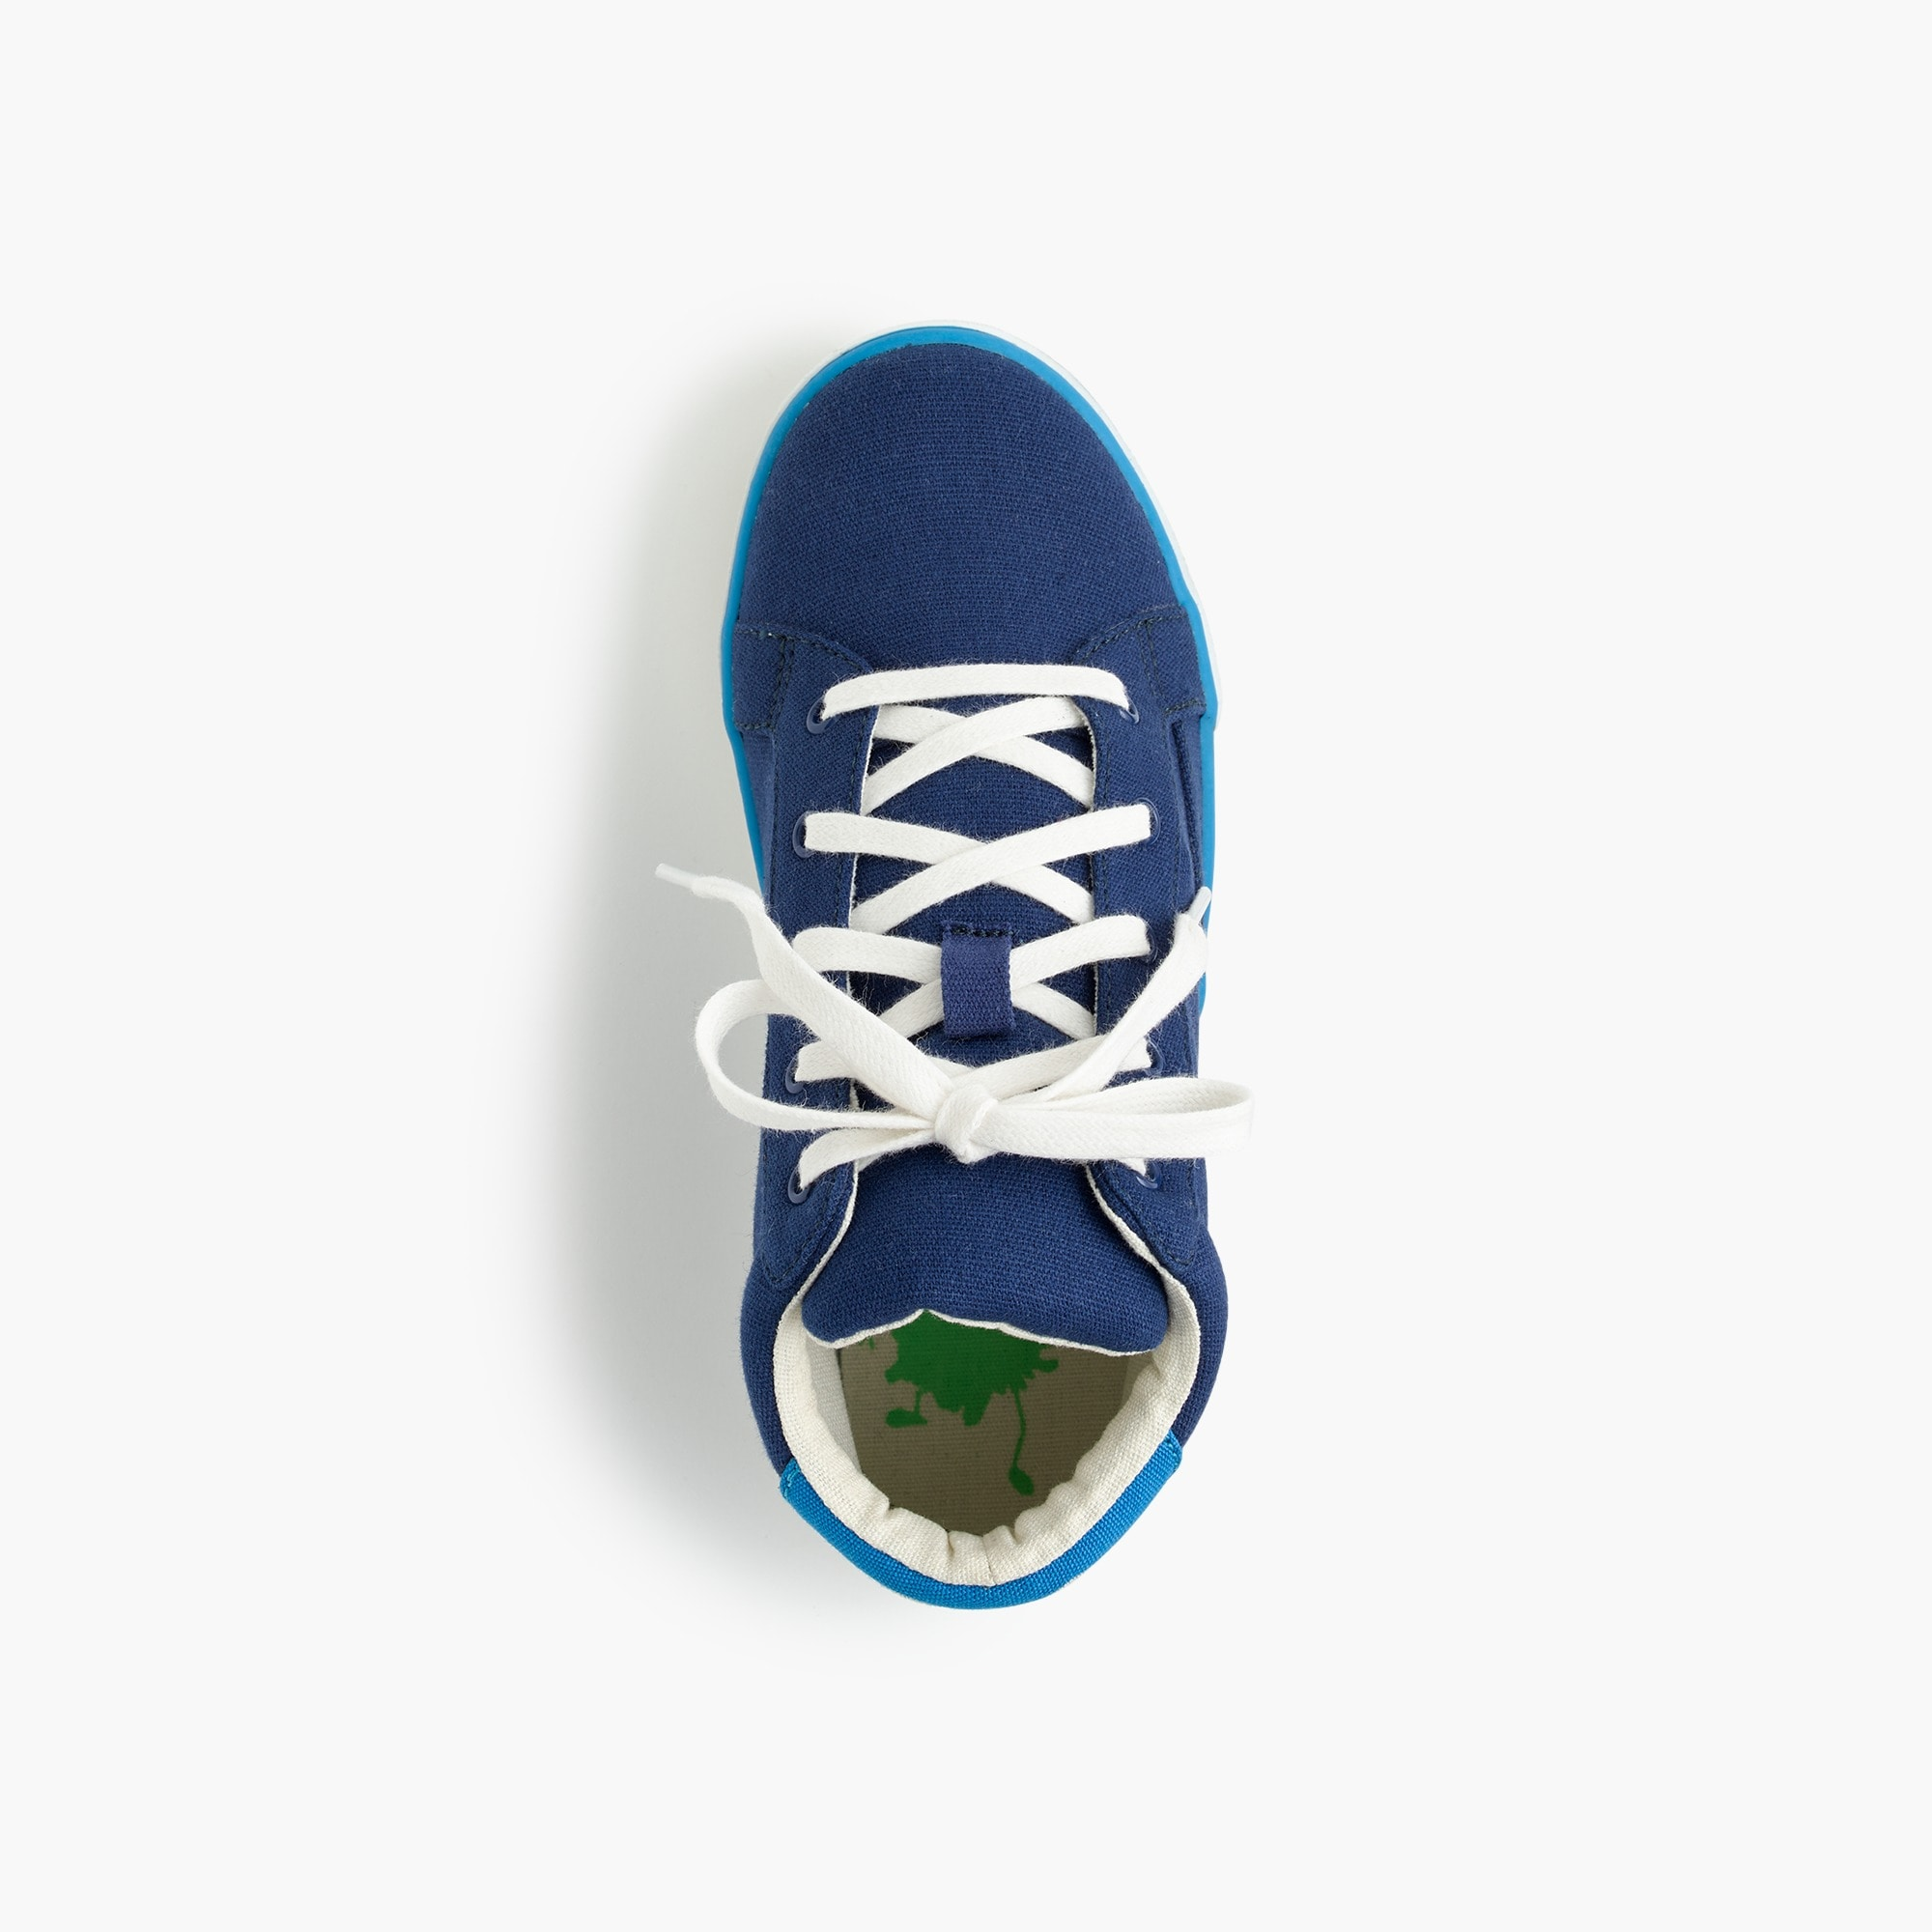 Kids' Max the Monster lace-up high top sneakers